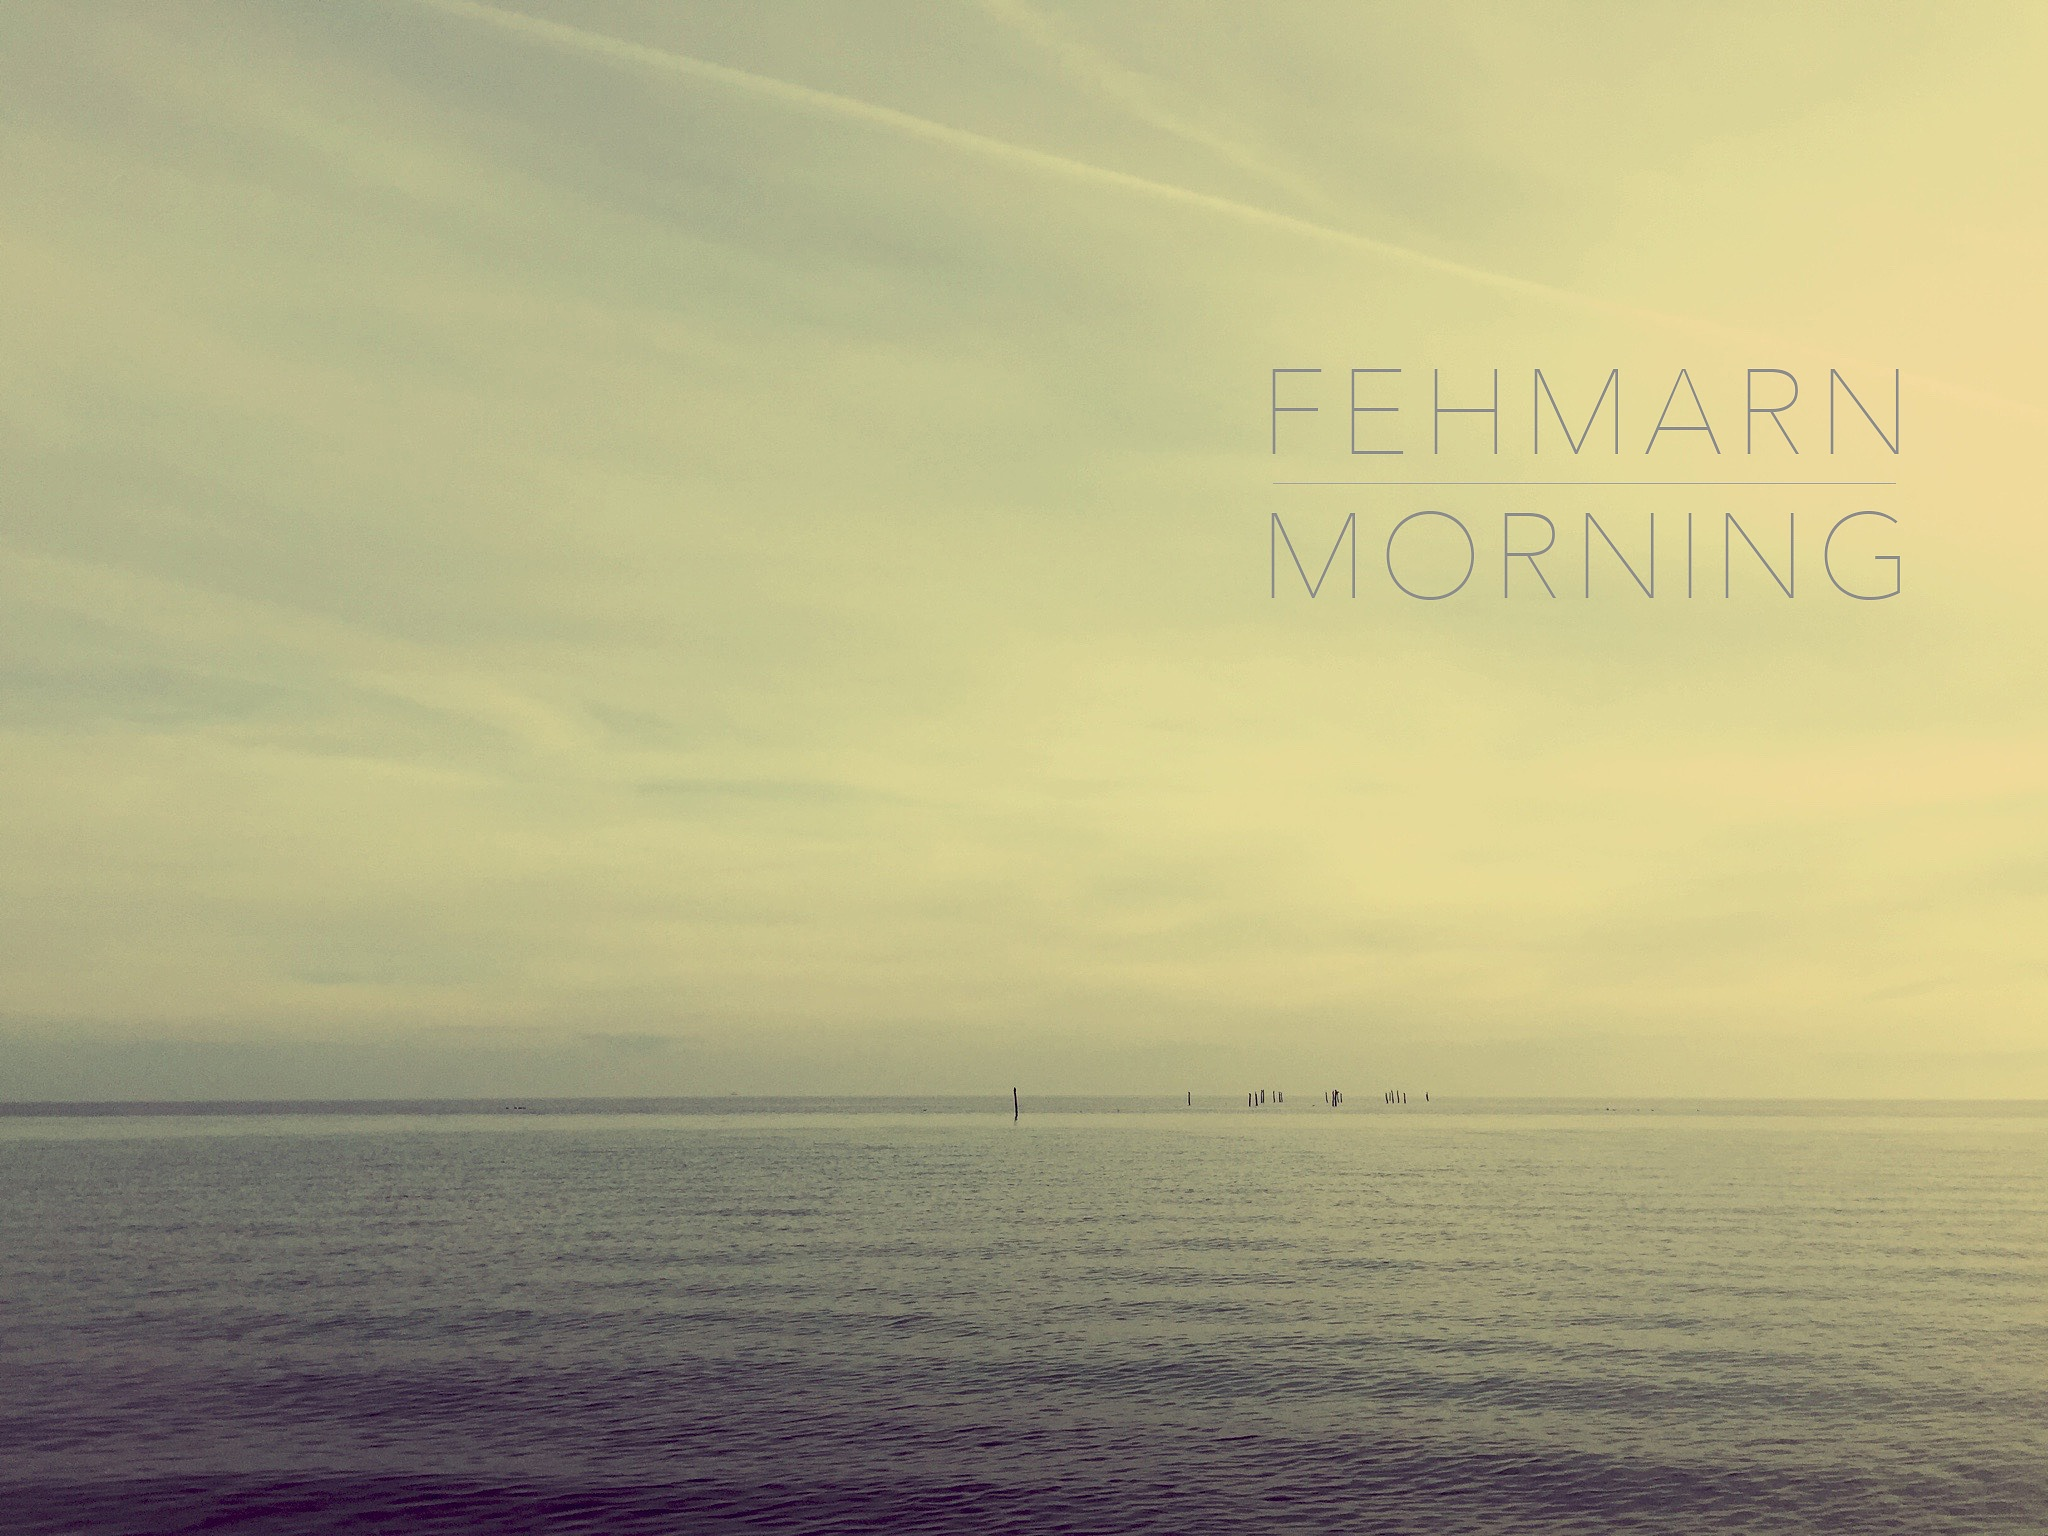 Fehmarn | Morning by Damiano Durante Photography